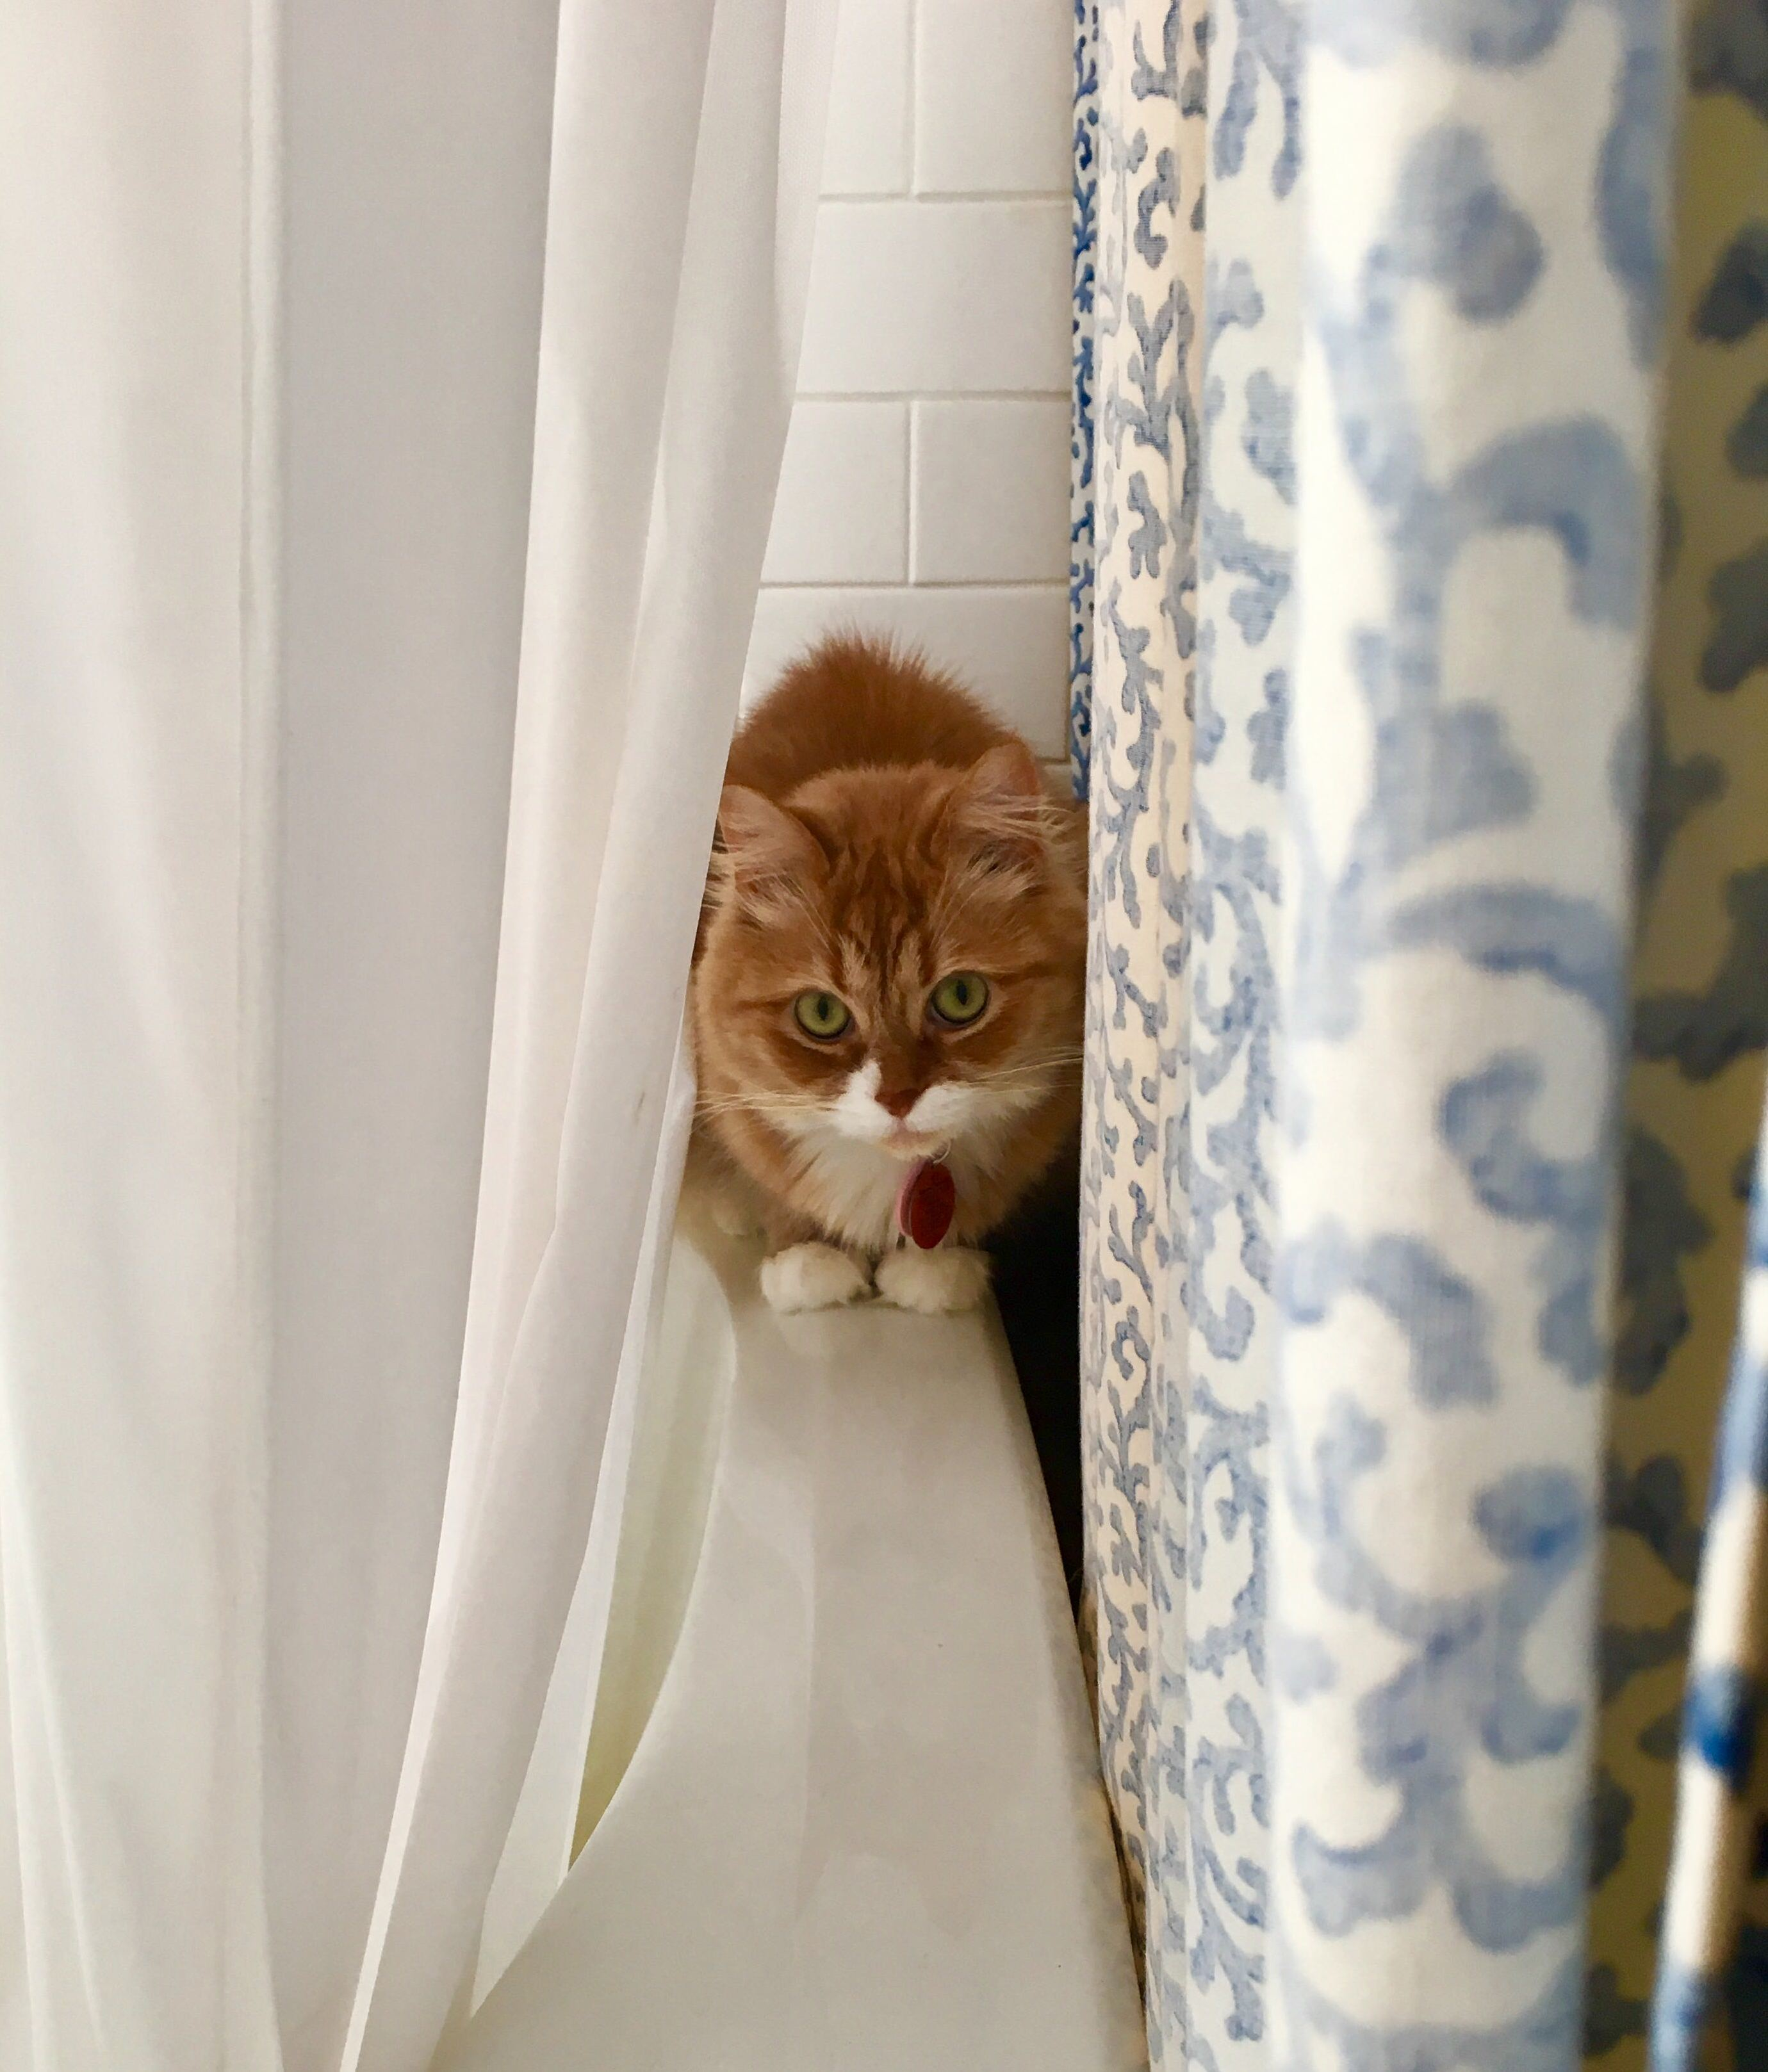 Winston likes to hide between the shower curtains